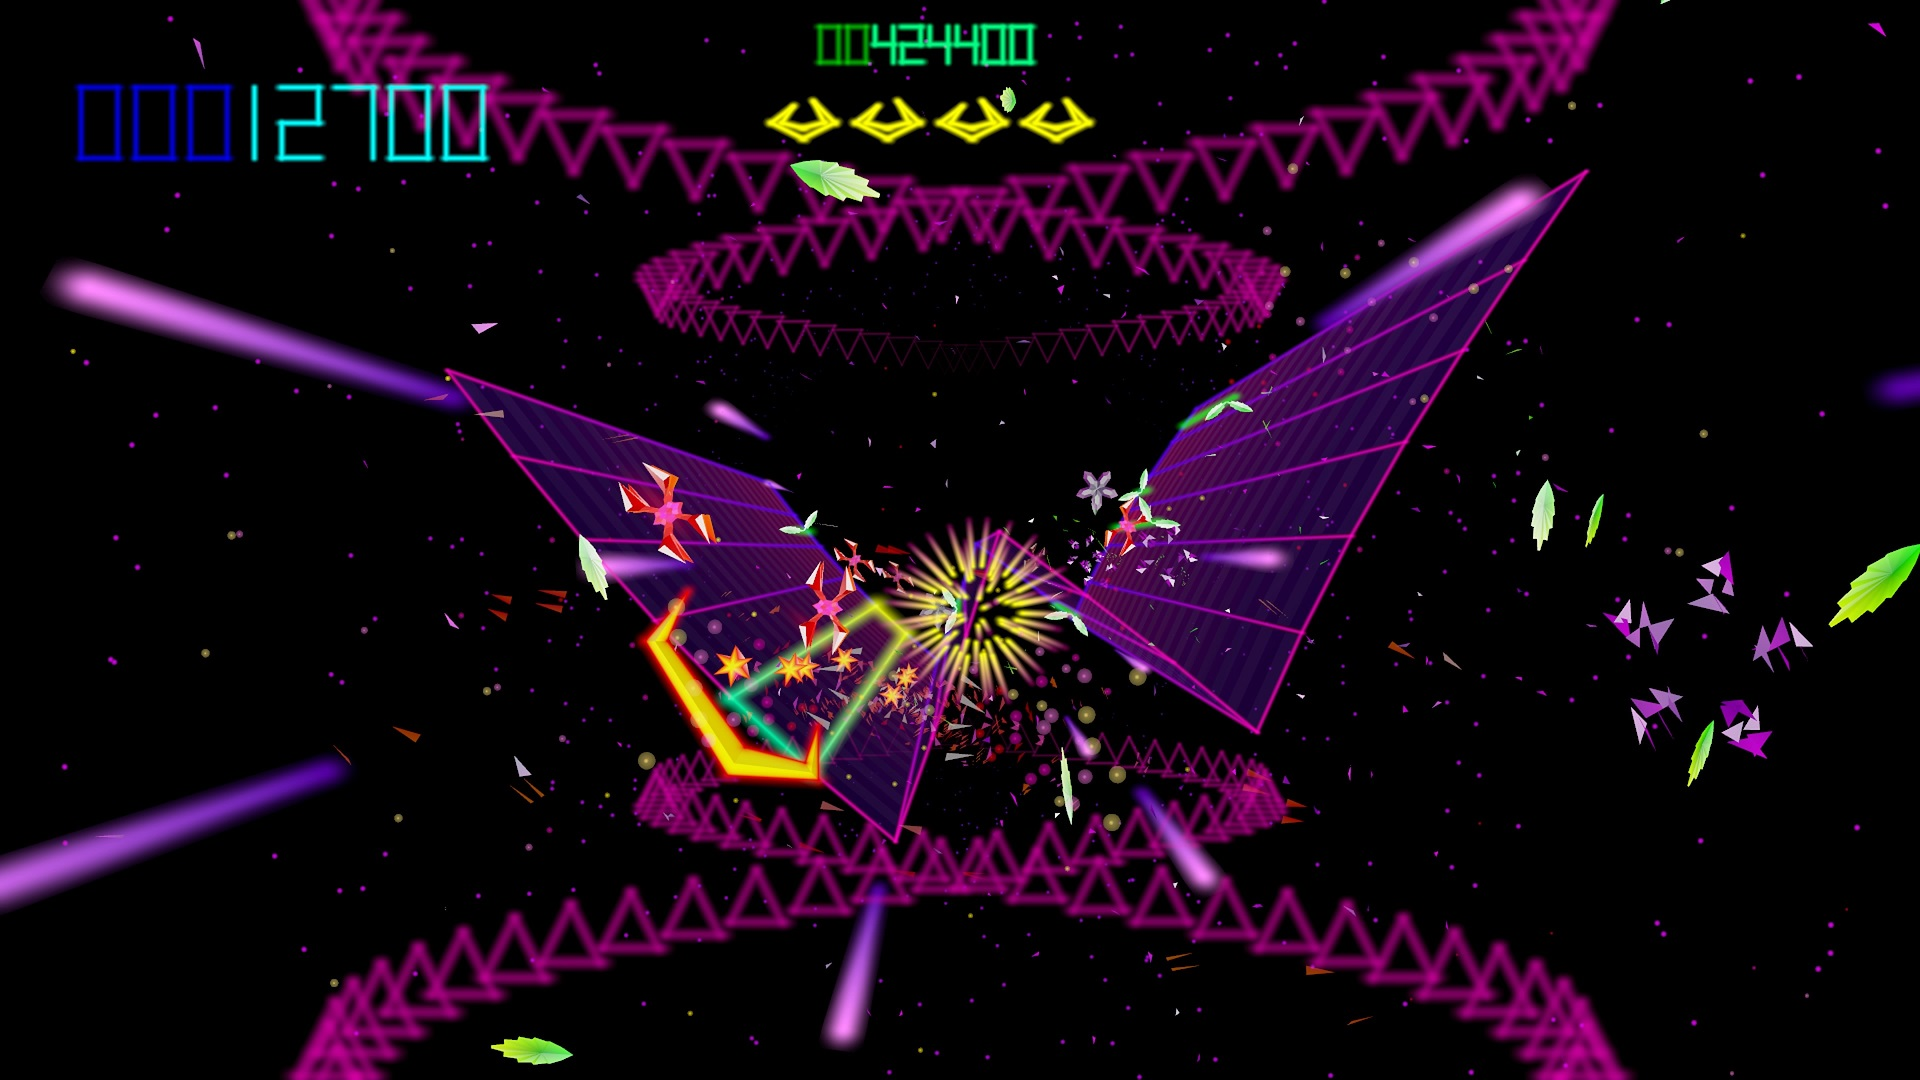 Tempest 4000 (PS4) - classic gameplay is forever